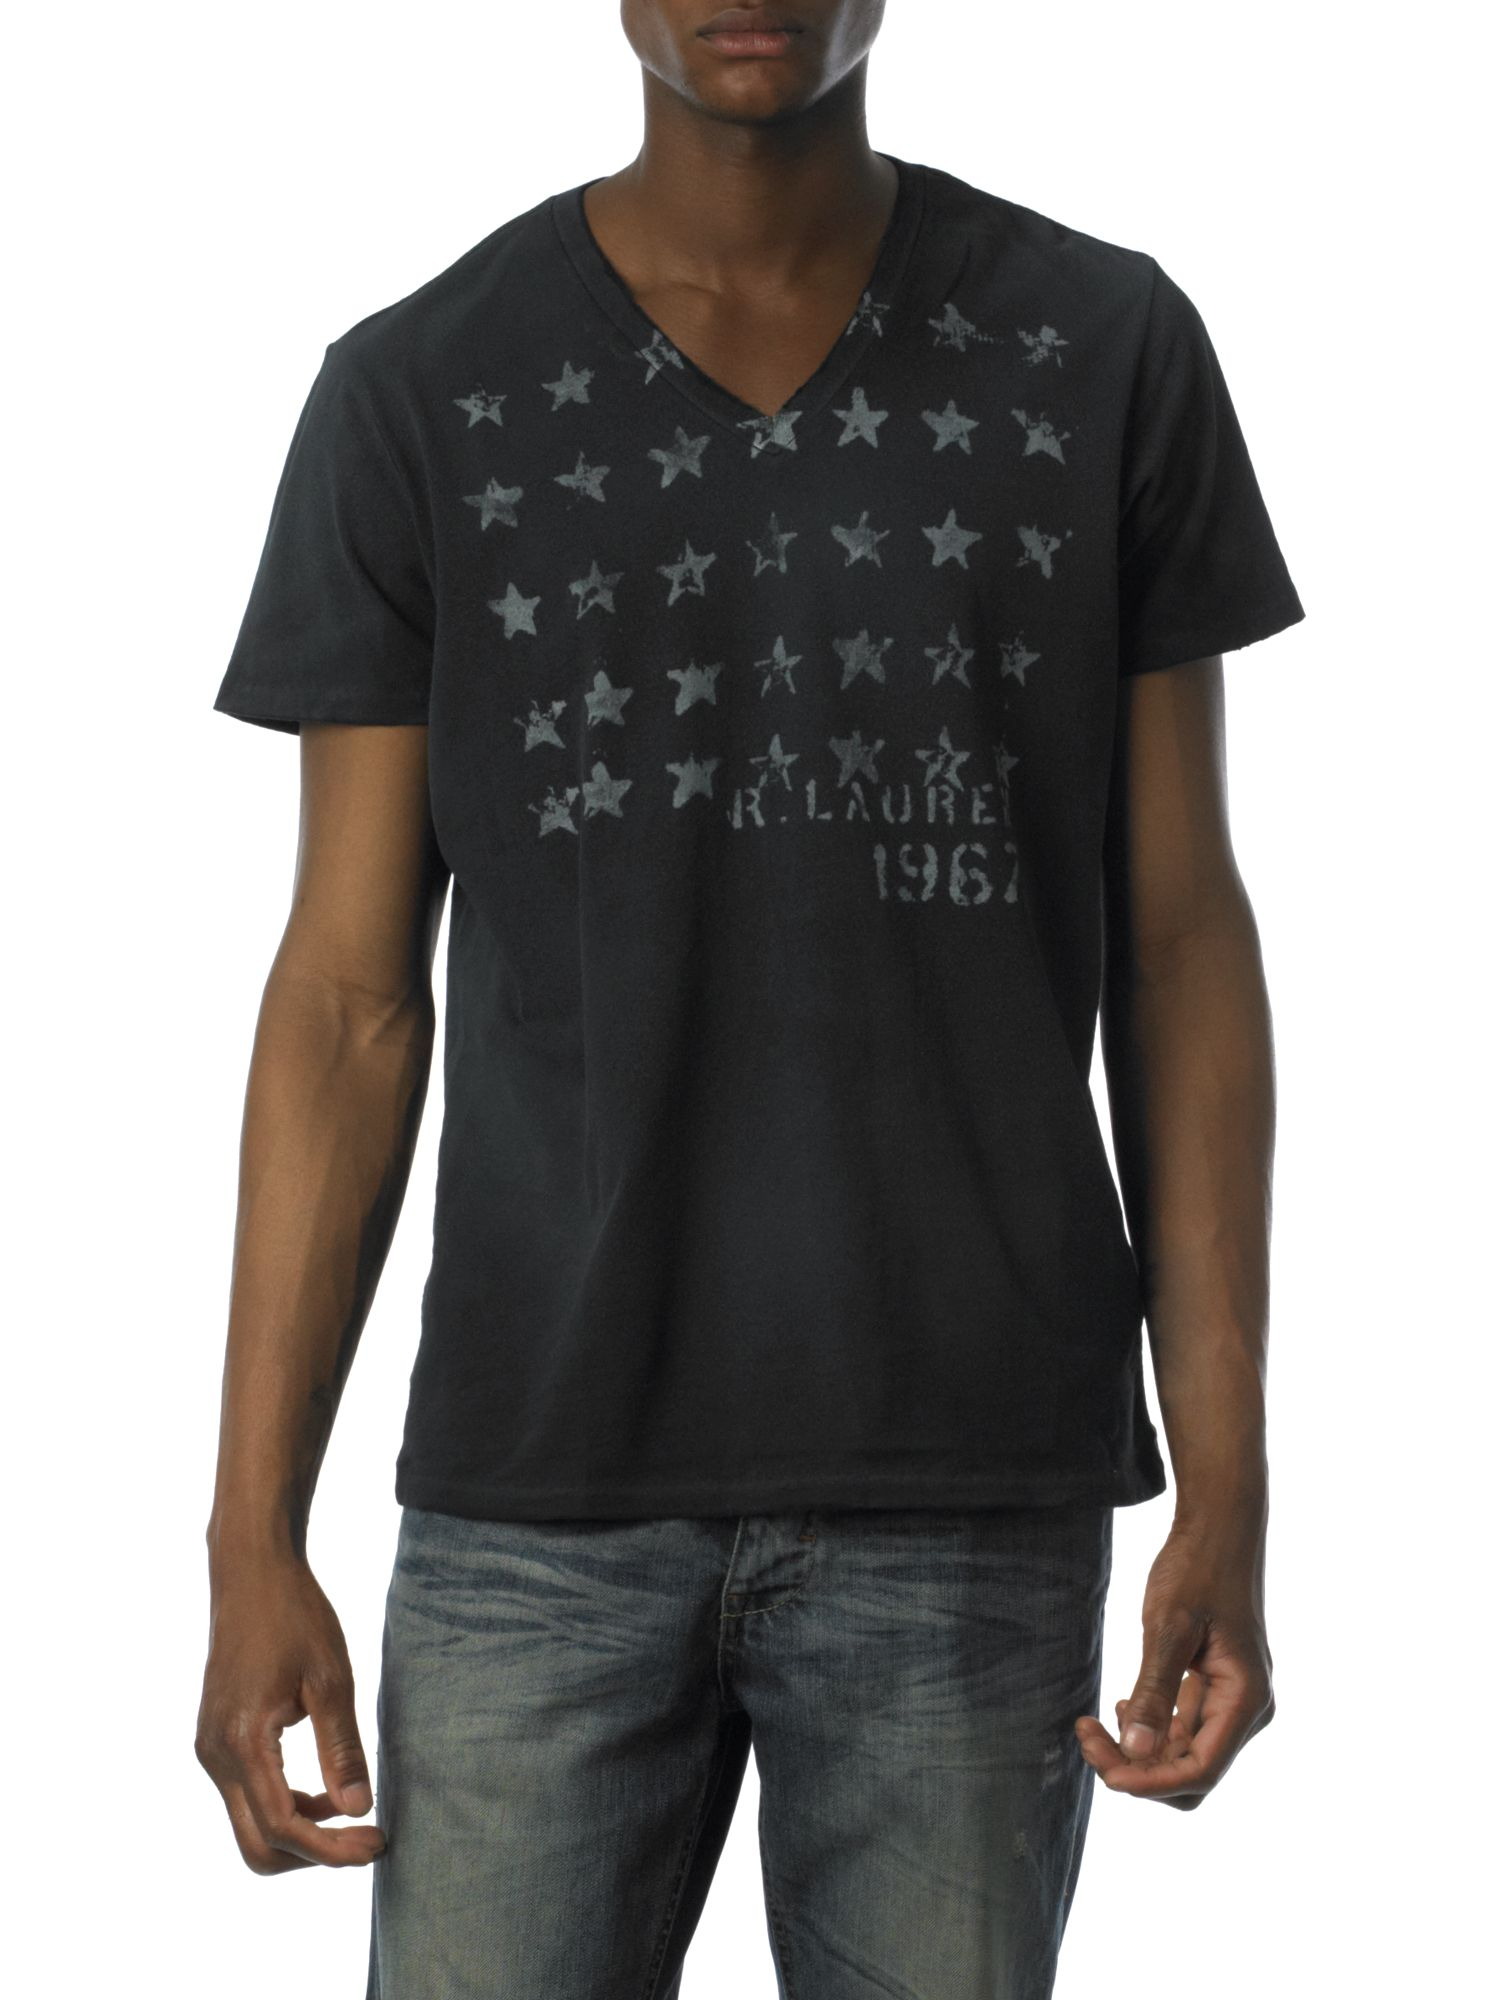 Polo Jeans V-neck stars T-shirt product image